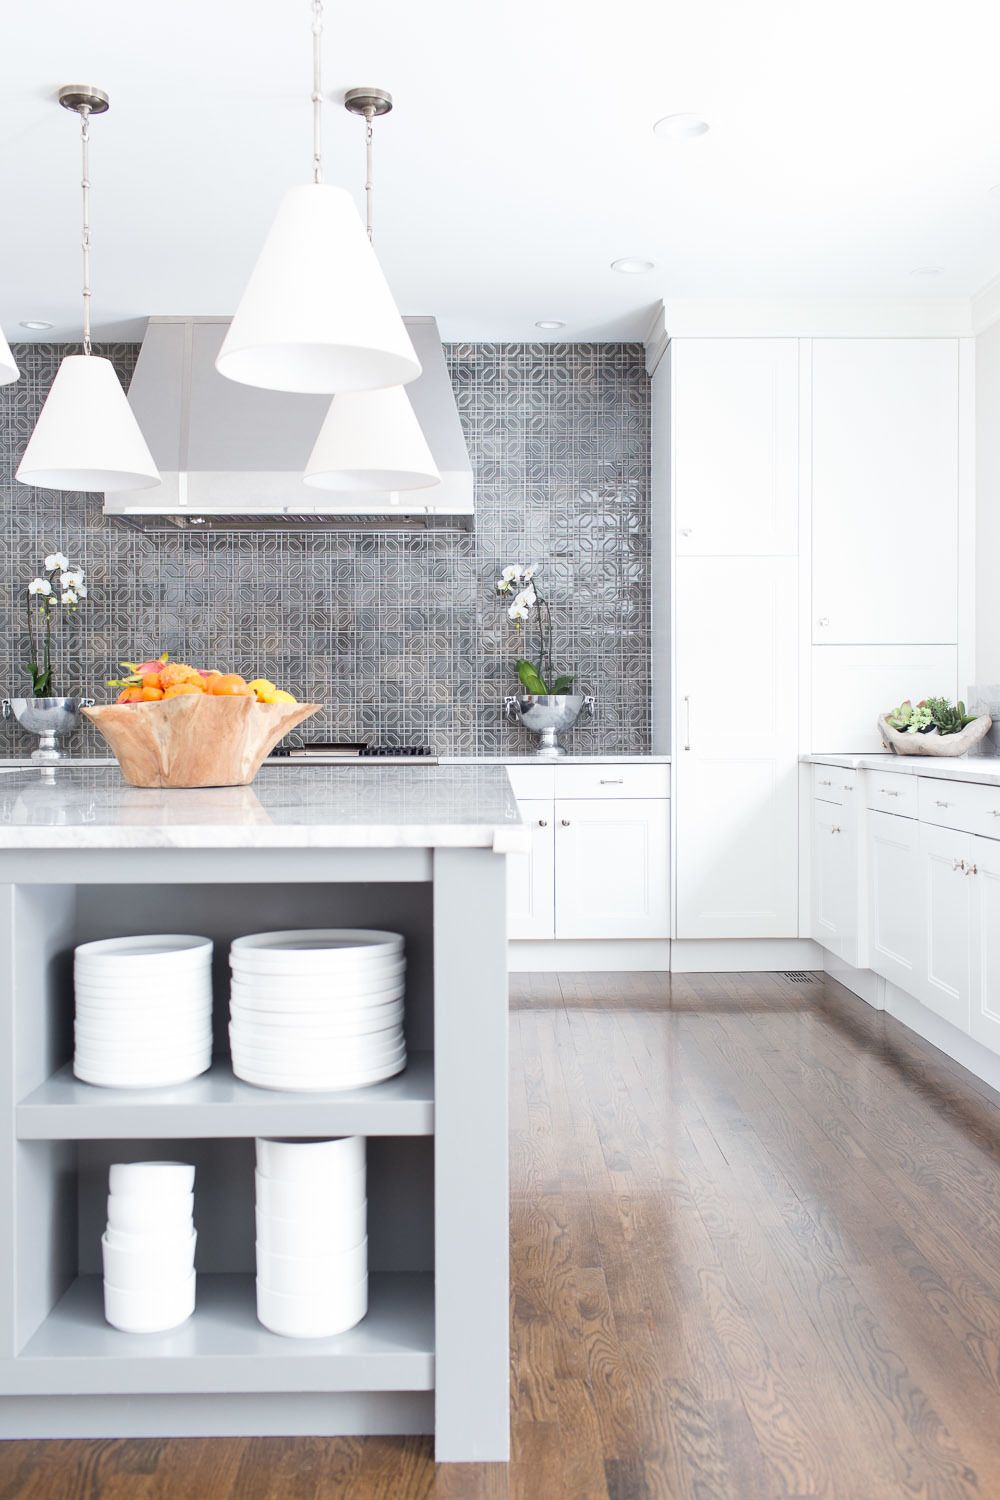 Gray n white kitchen splash of orange s or yellow with lemons real or glass vase must me low solid and un tipable